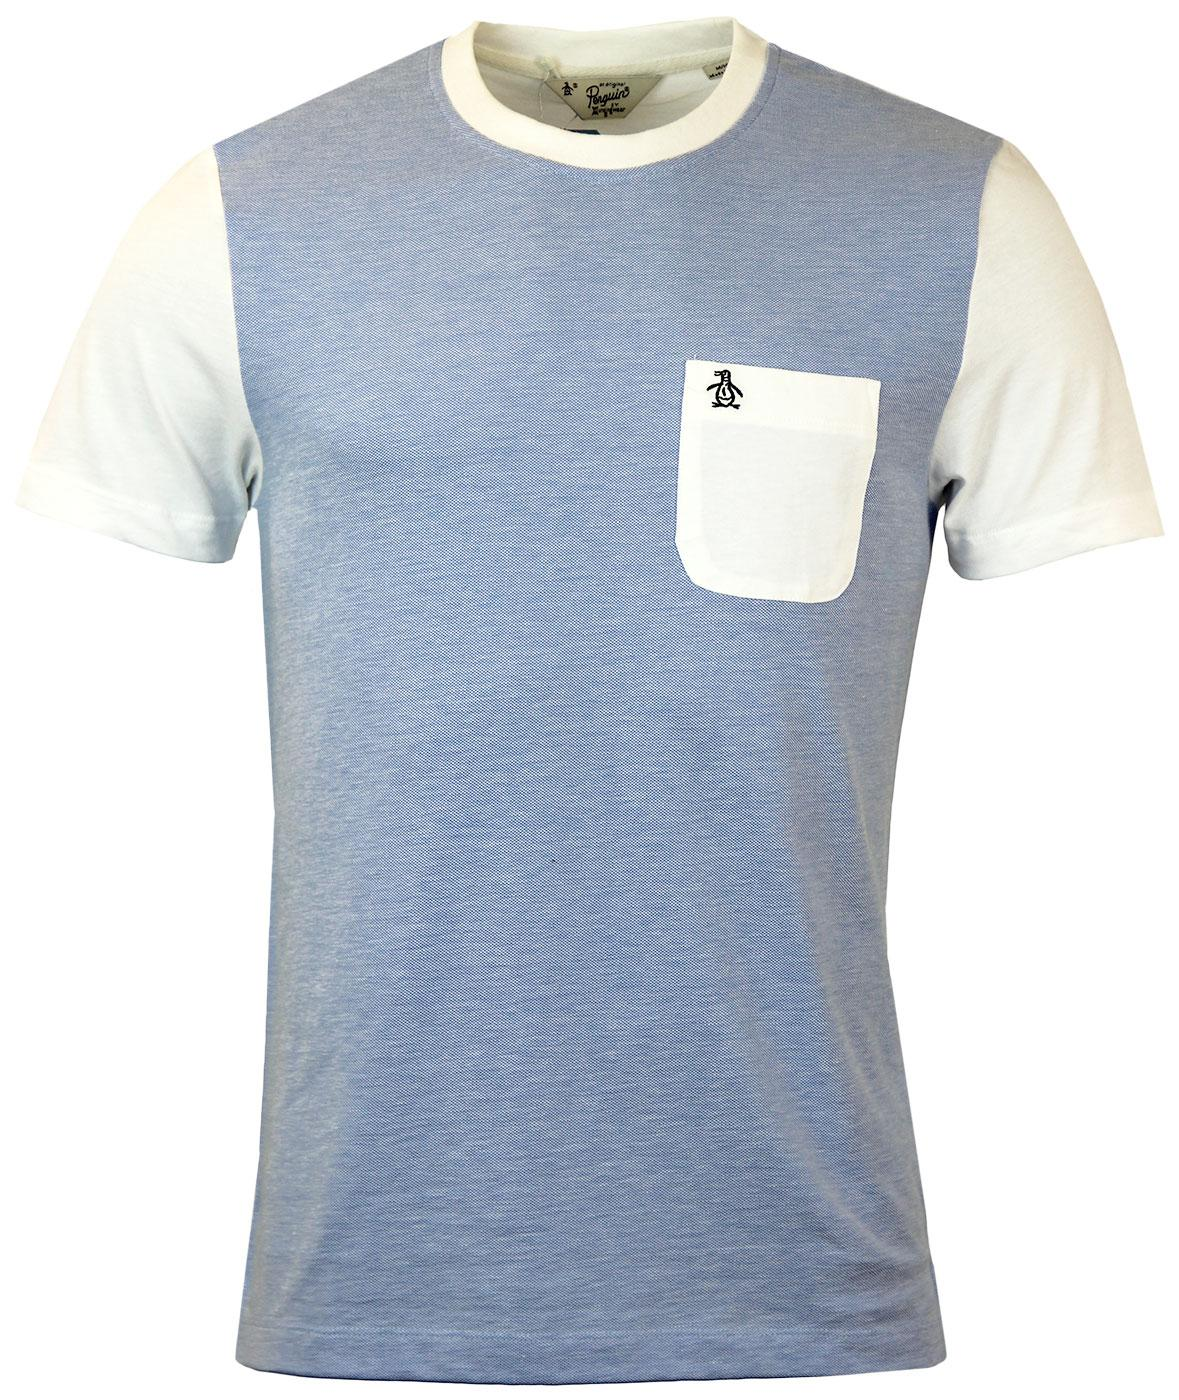 Dimmer ORIGINAL PENGUIN Retro Mod Two Tone Tee